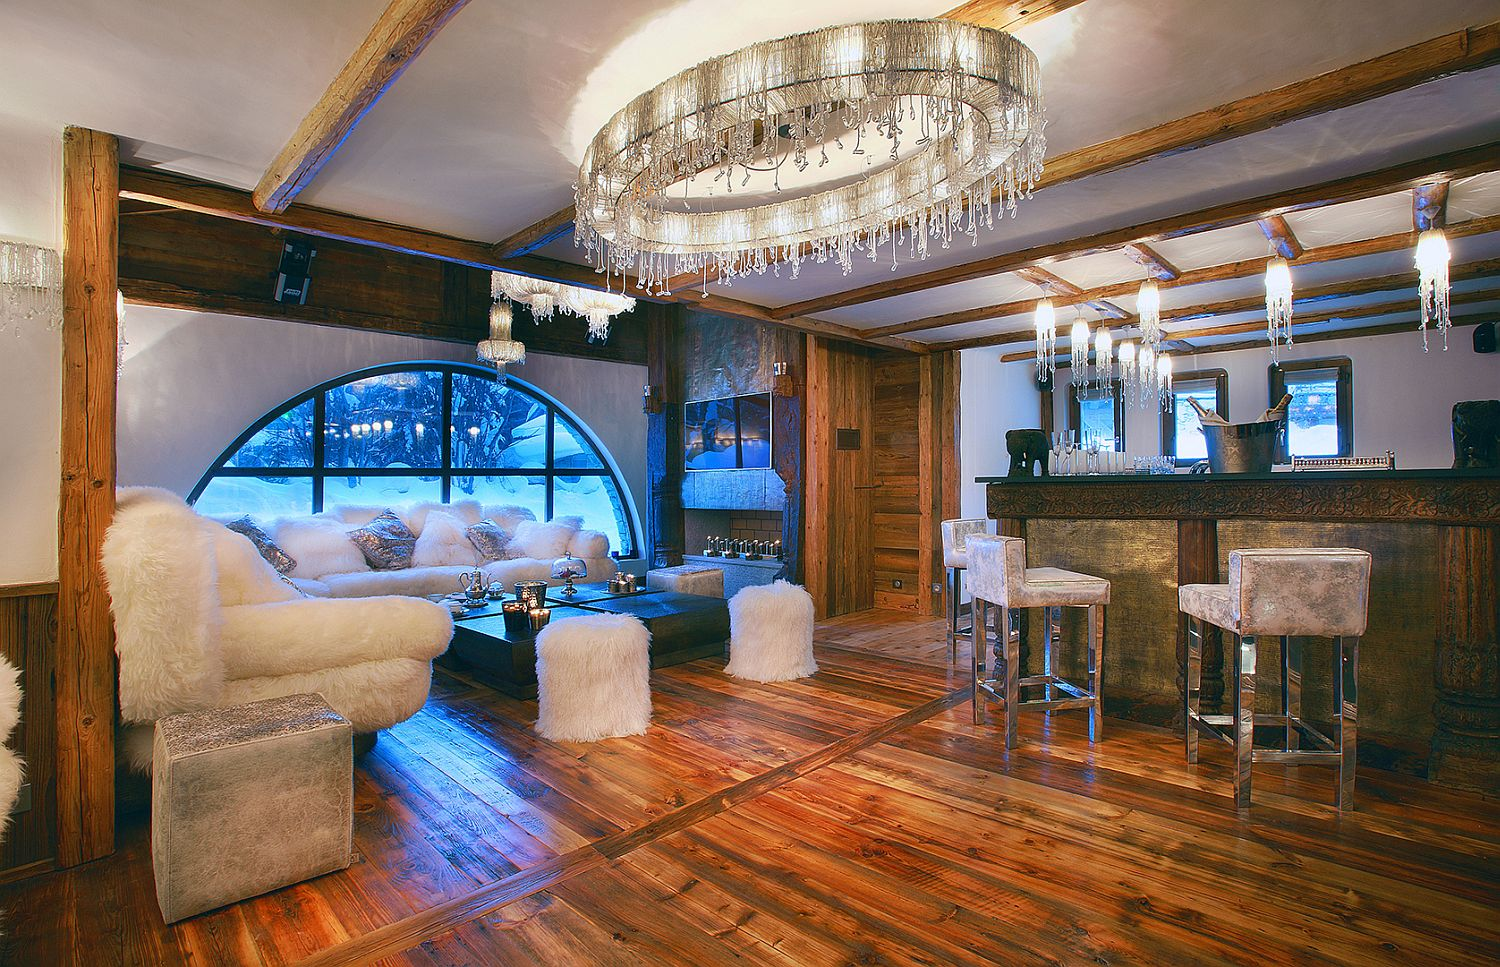 Modern decor and lighting is combined with classic Alpine magic at Marco Polo